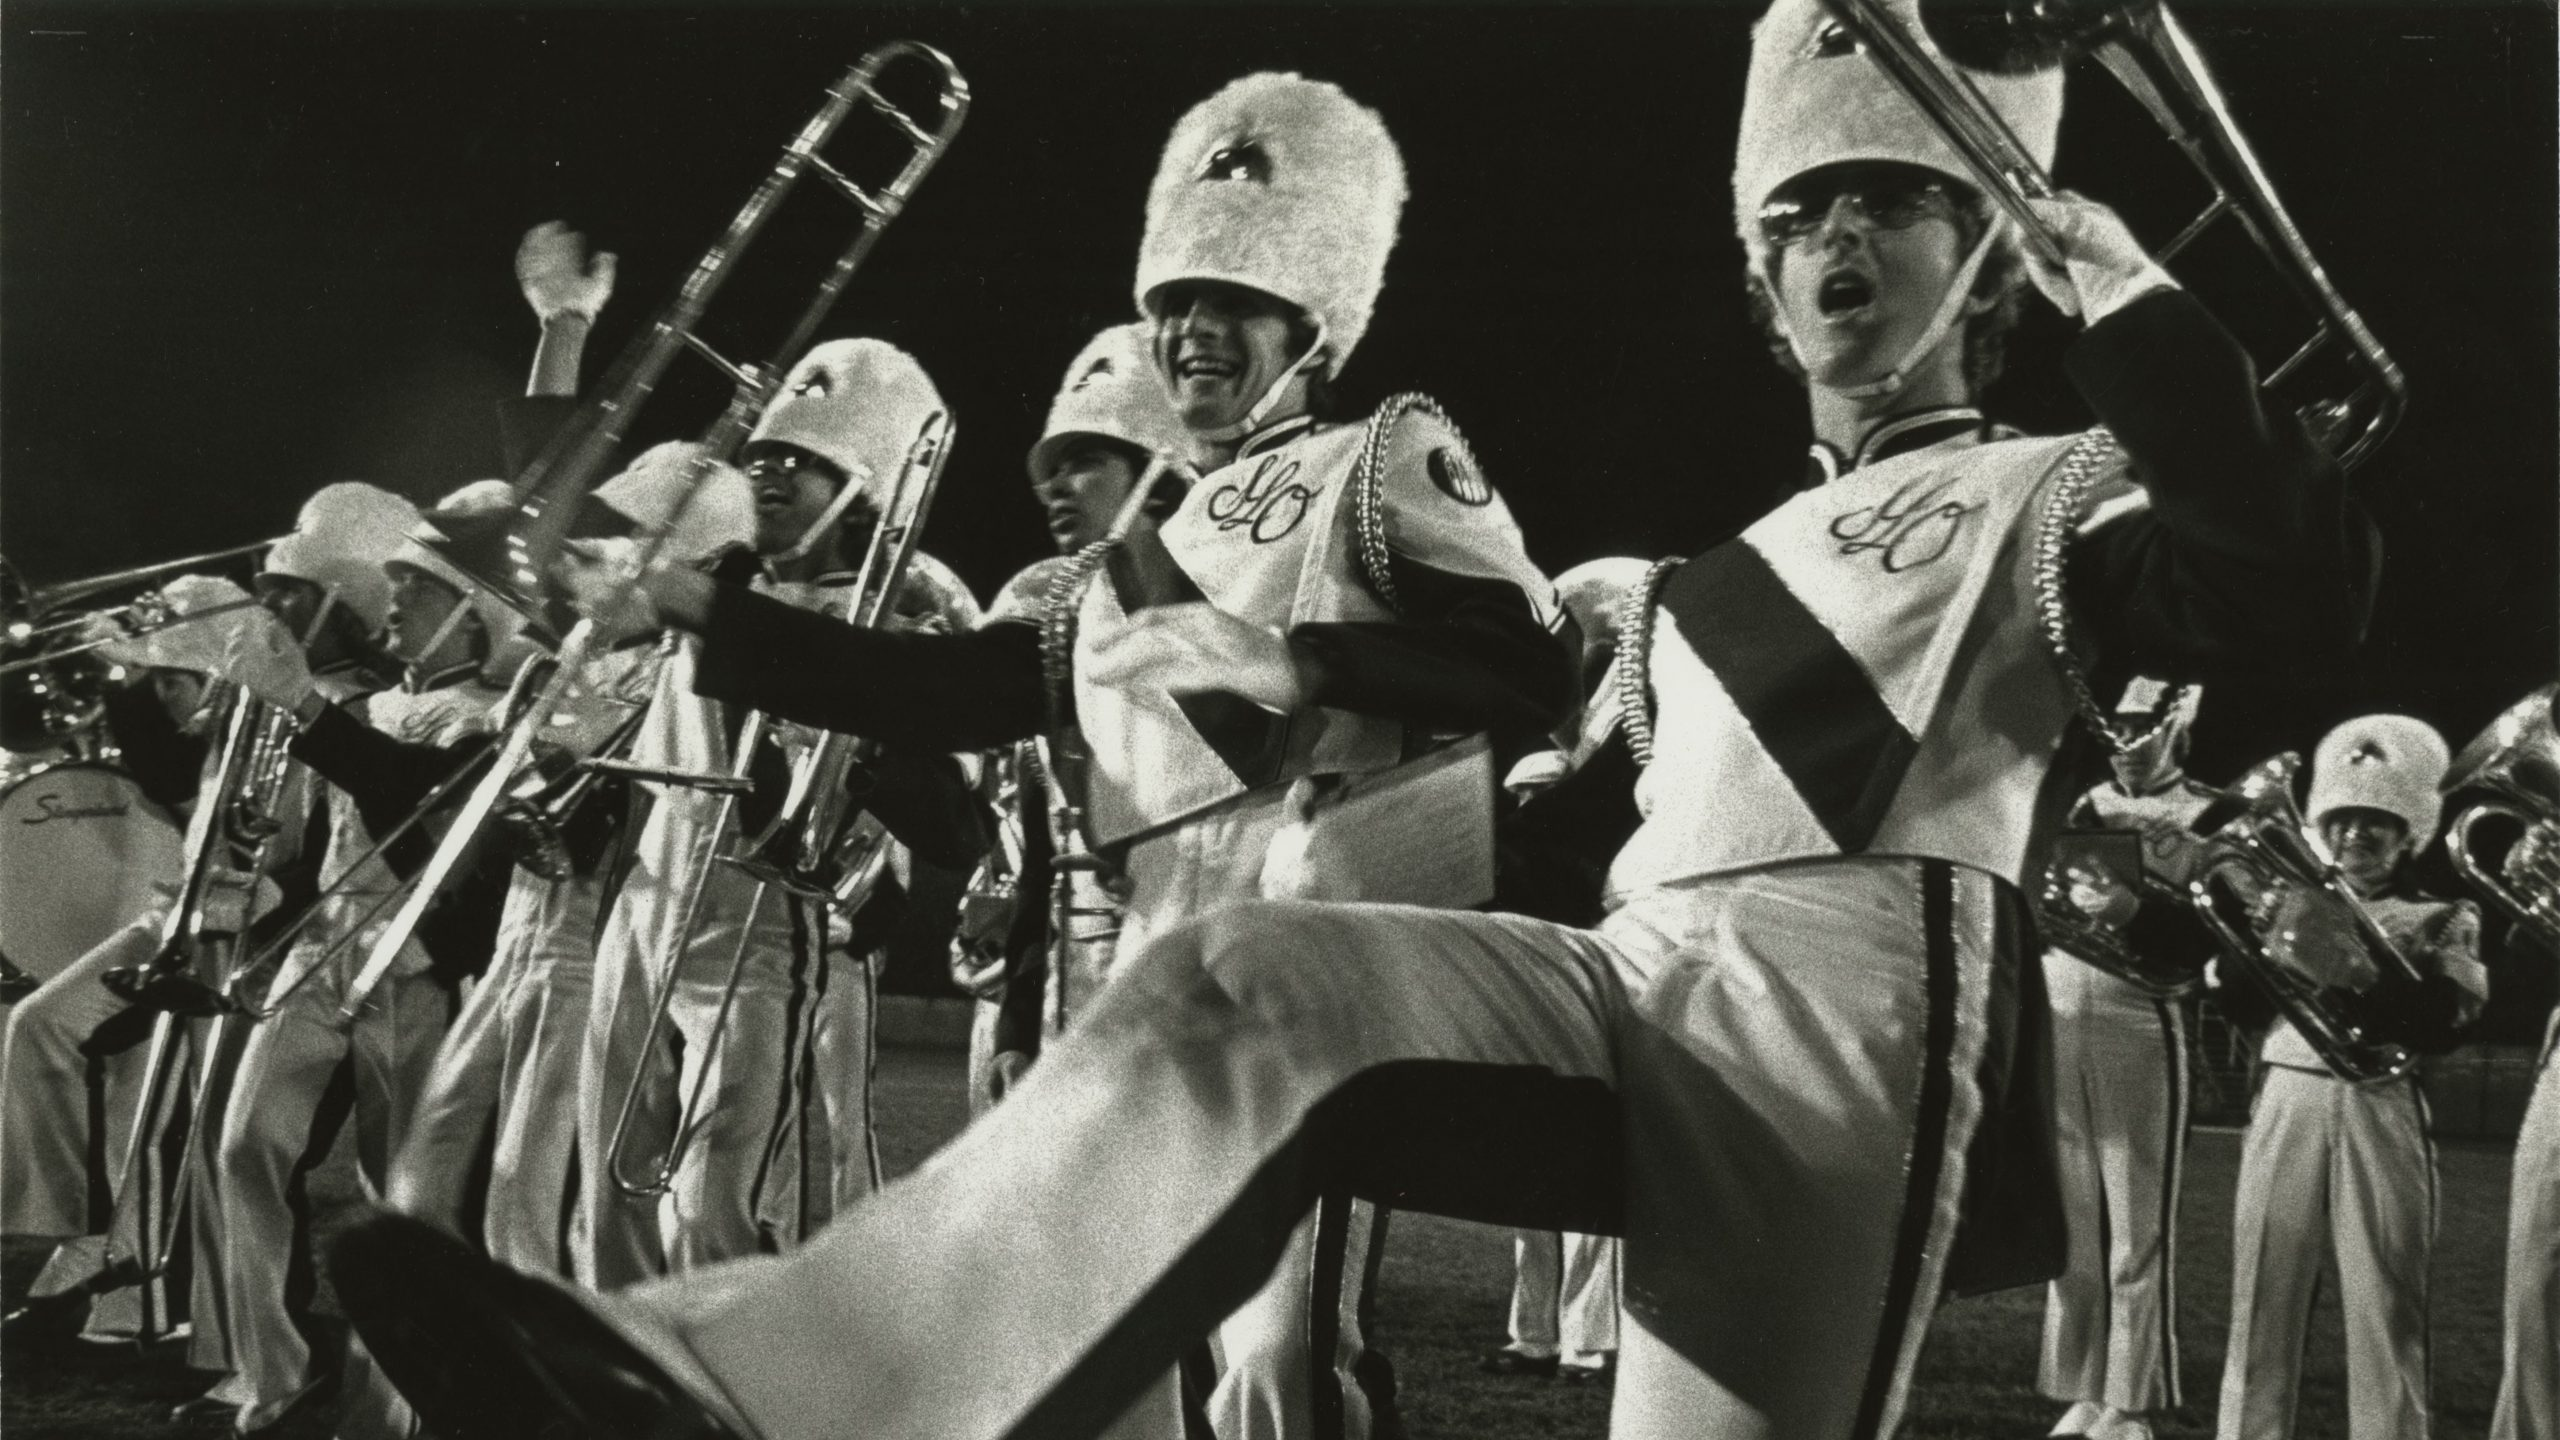 A black and white photo of Mustang Band members performing in 1983.